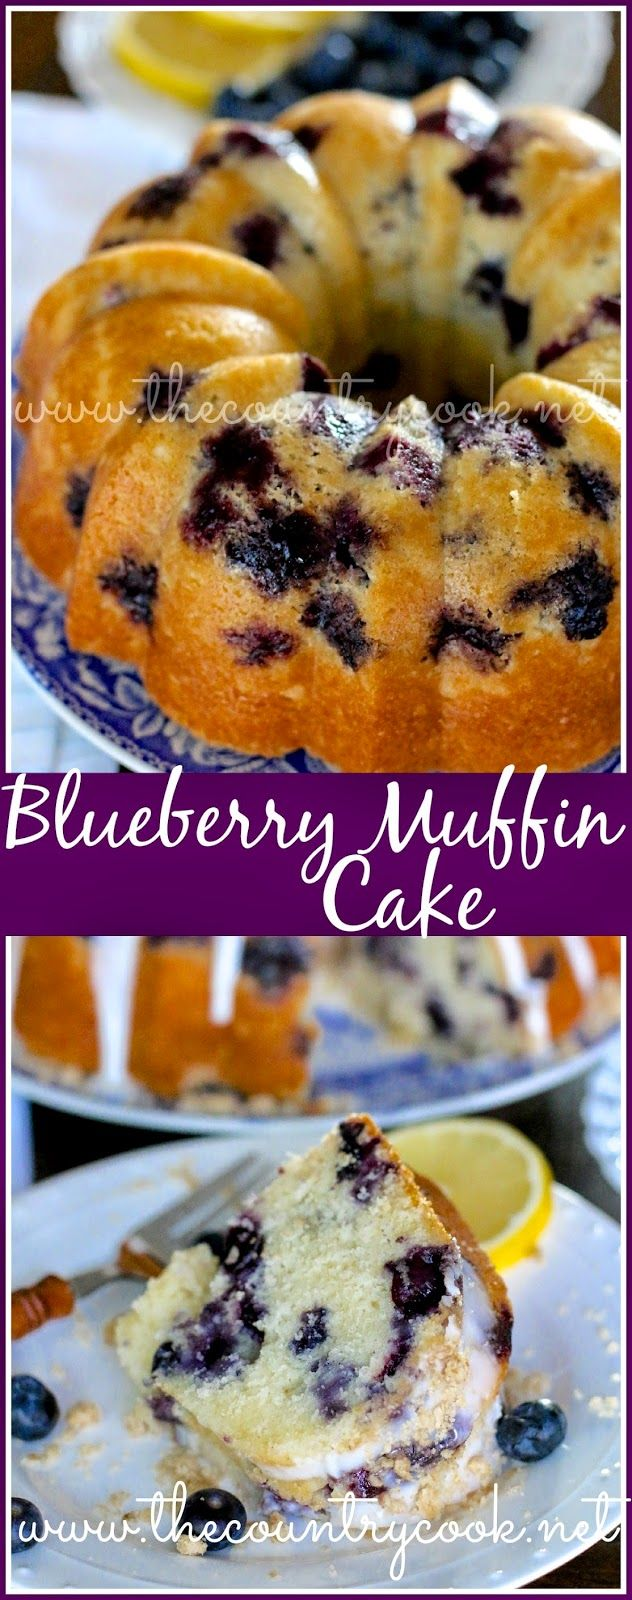 Blueberry Muffin Cake from The Country Cook - this cake will blow your mind! Moist blueberry cake with a touch of lemon - AMAZING!